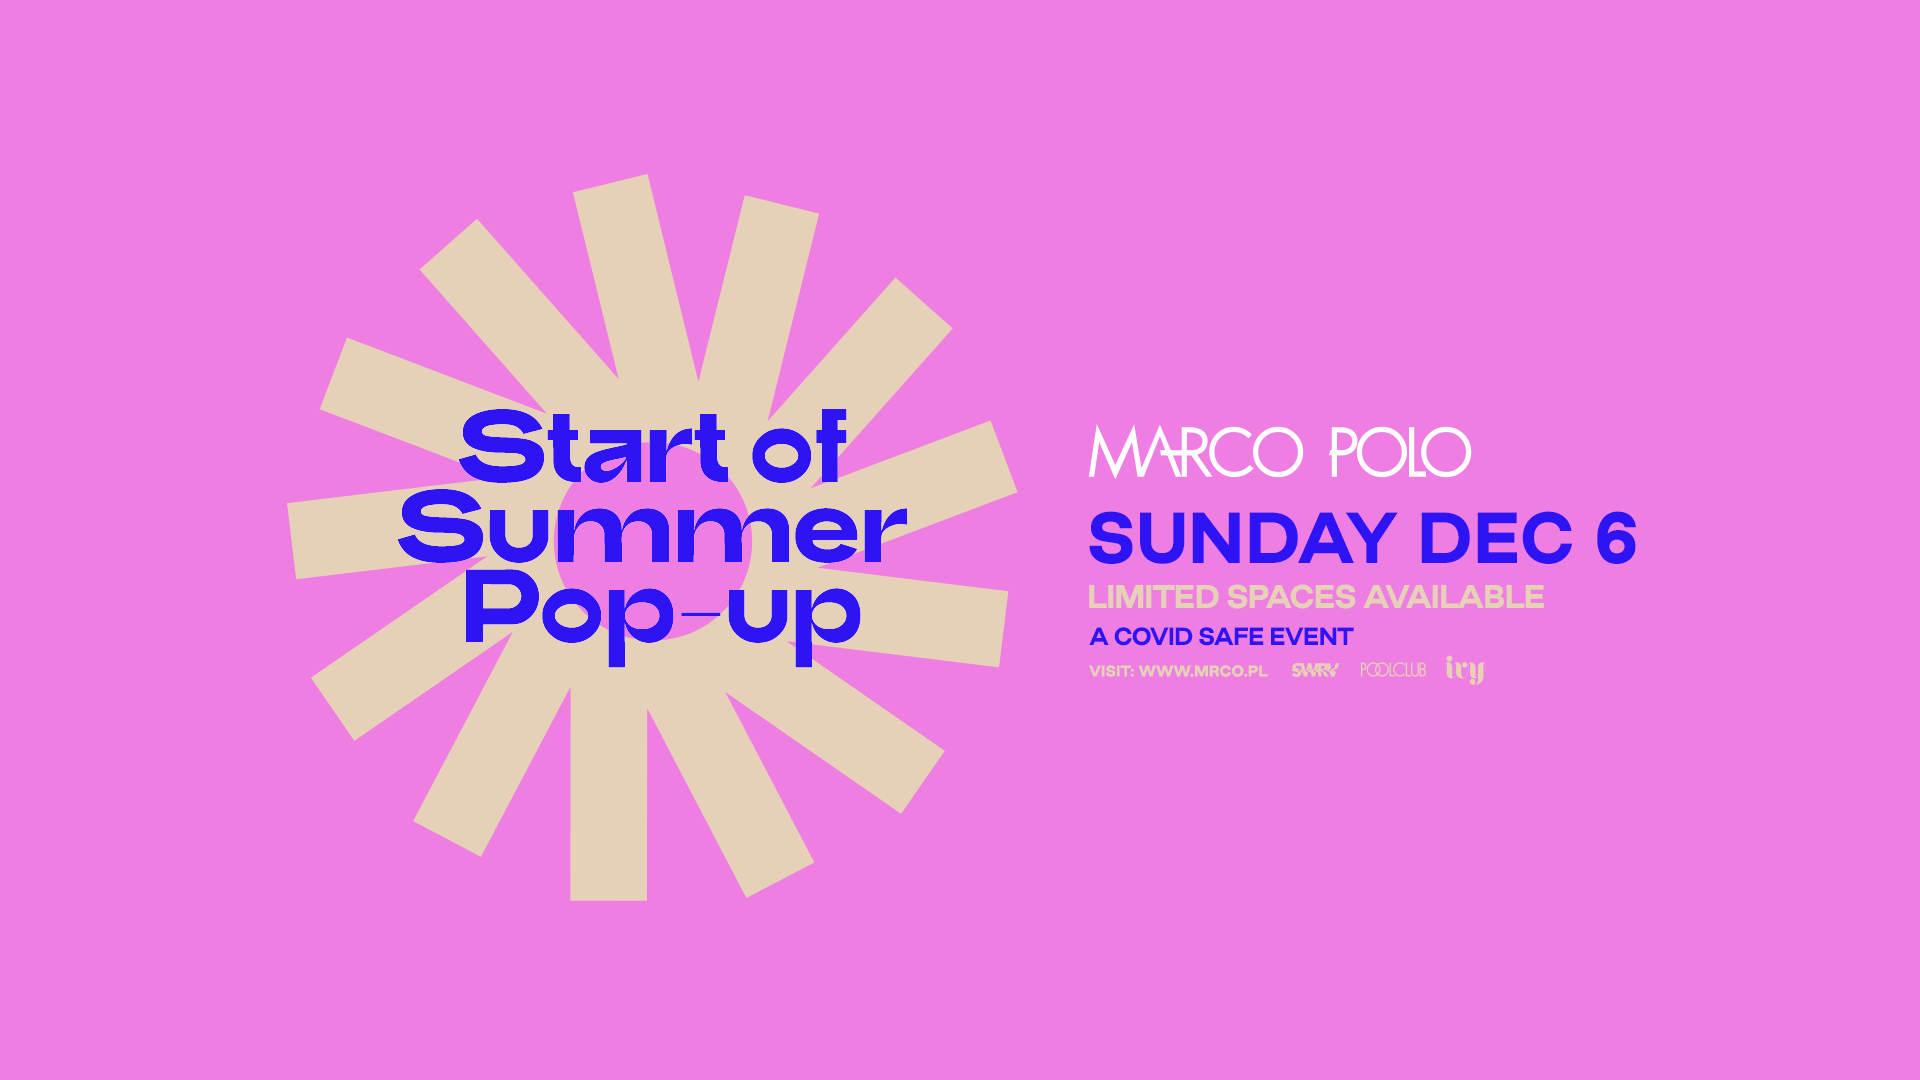 Find tickets from Marco Polo